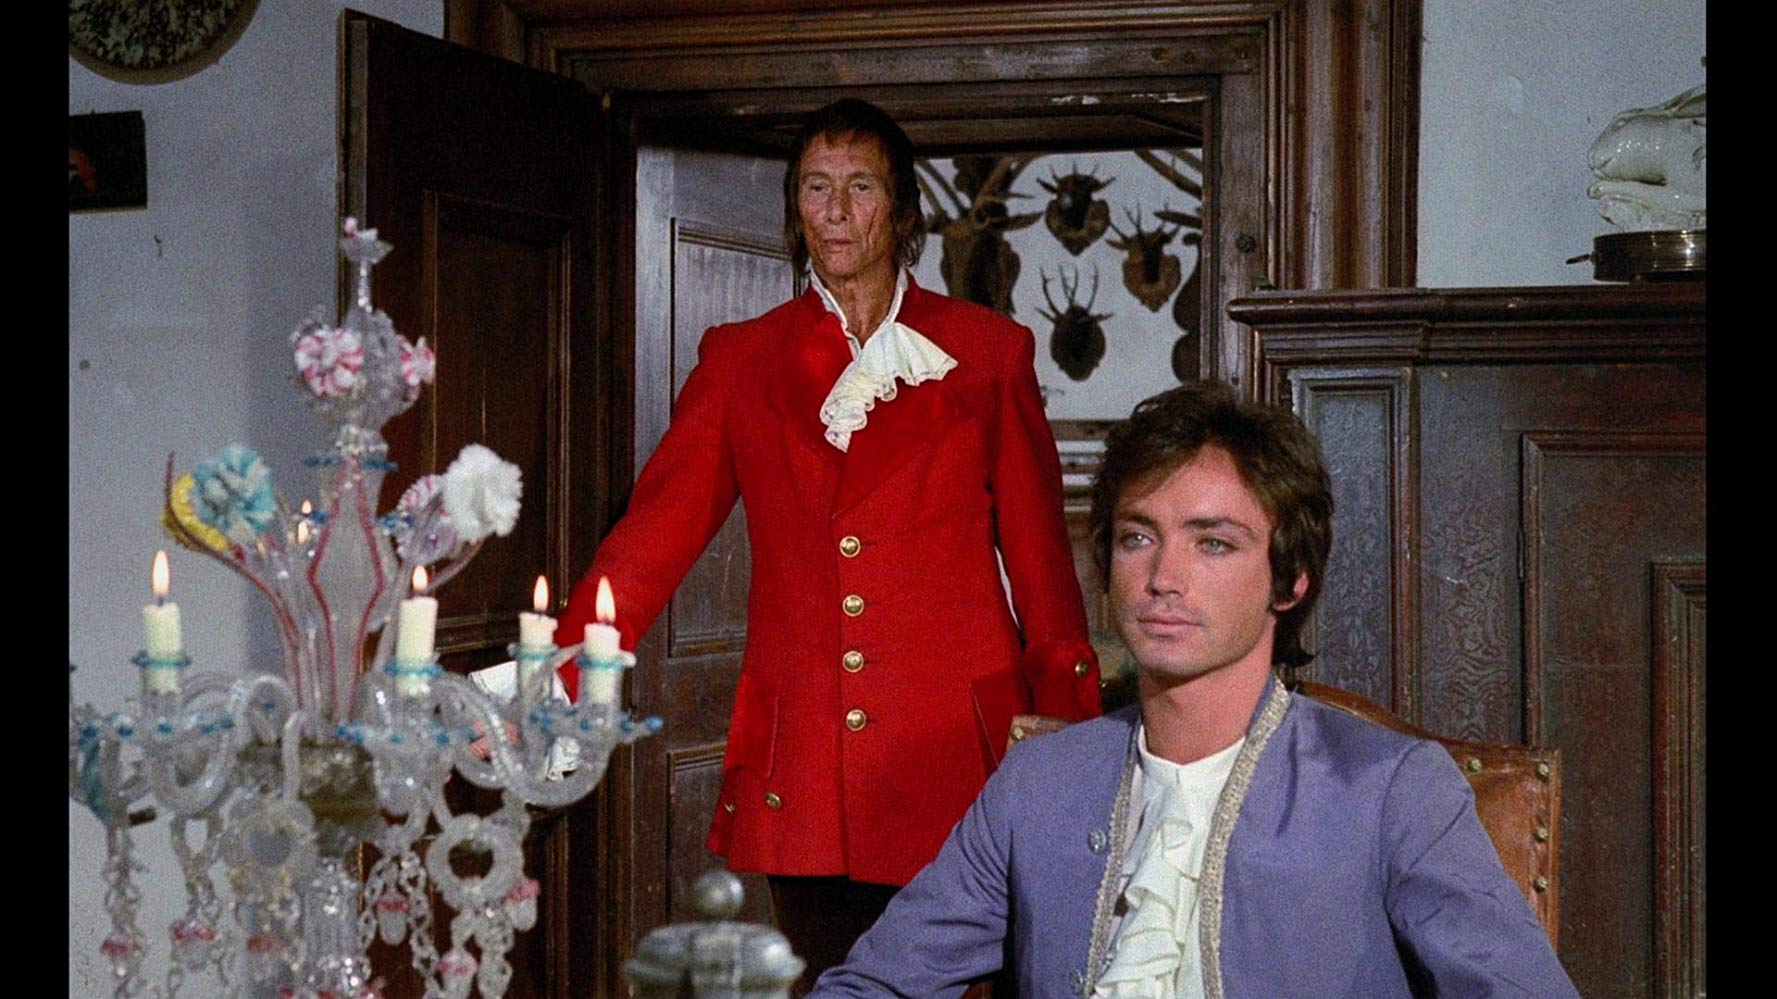 A young man (Udo Kier) sits at the table as an older man (Reggie Nalder) enters the room behind him.